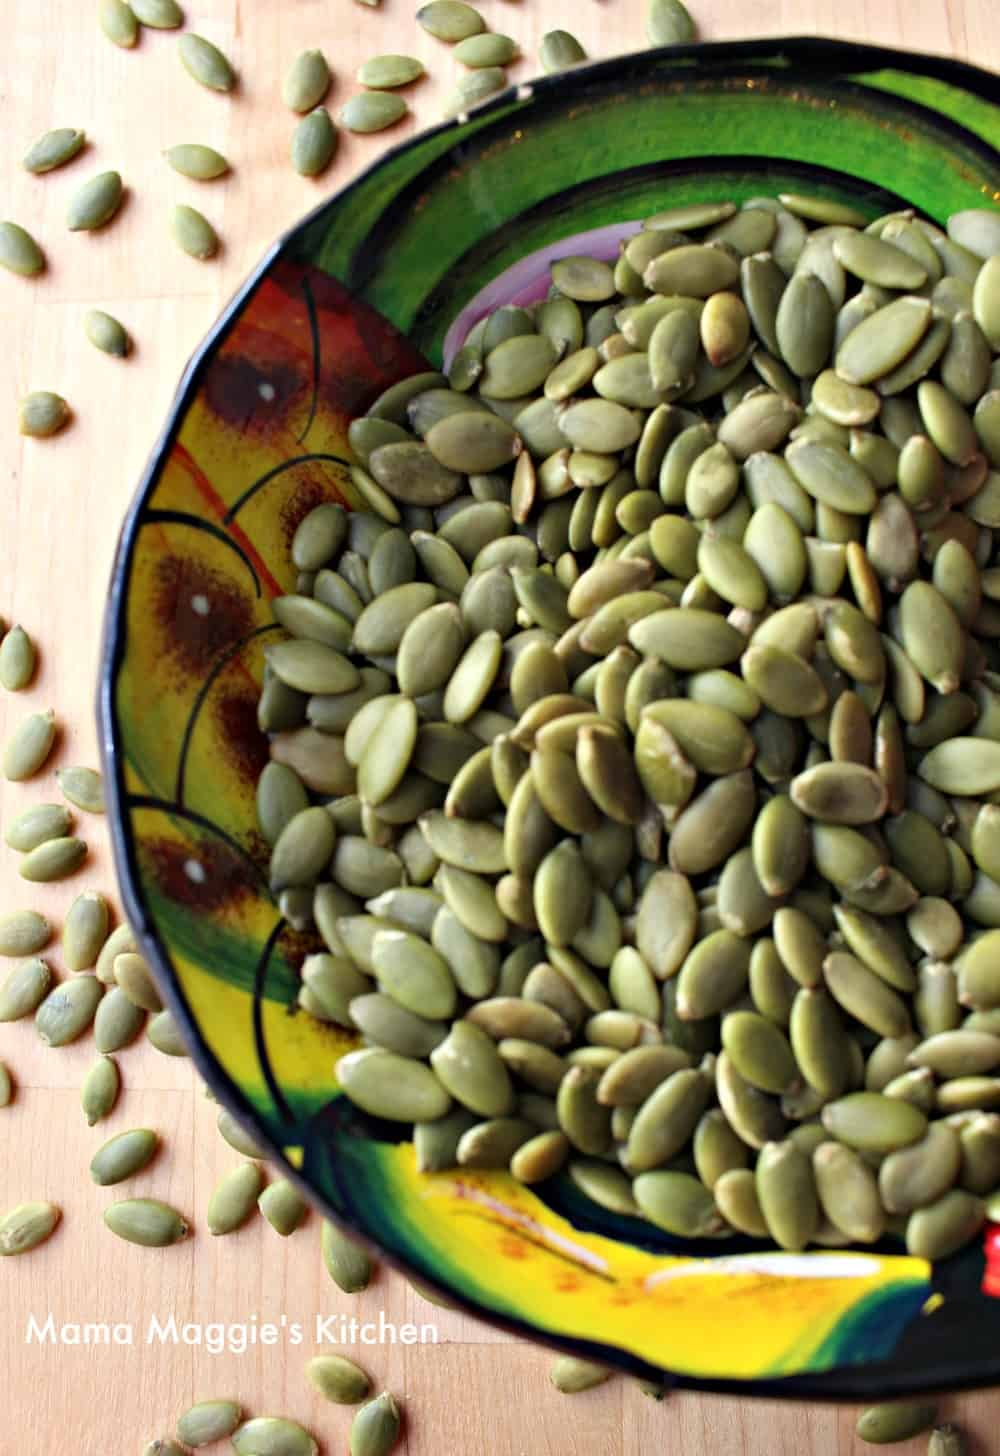 Mexican Pepita seeds in a decorative and colorful bowl.